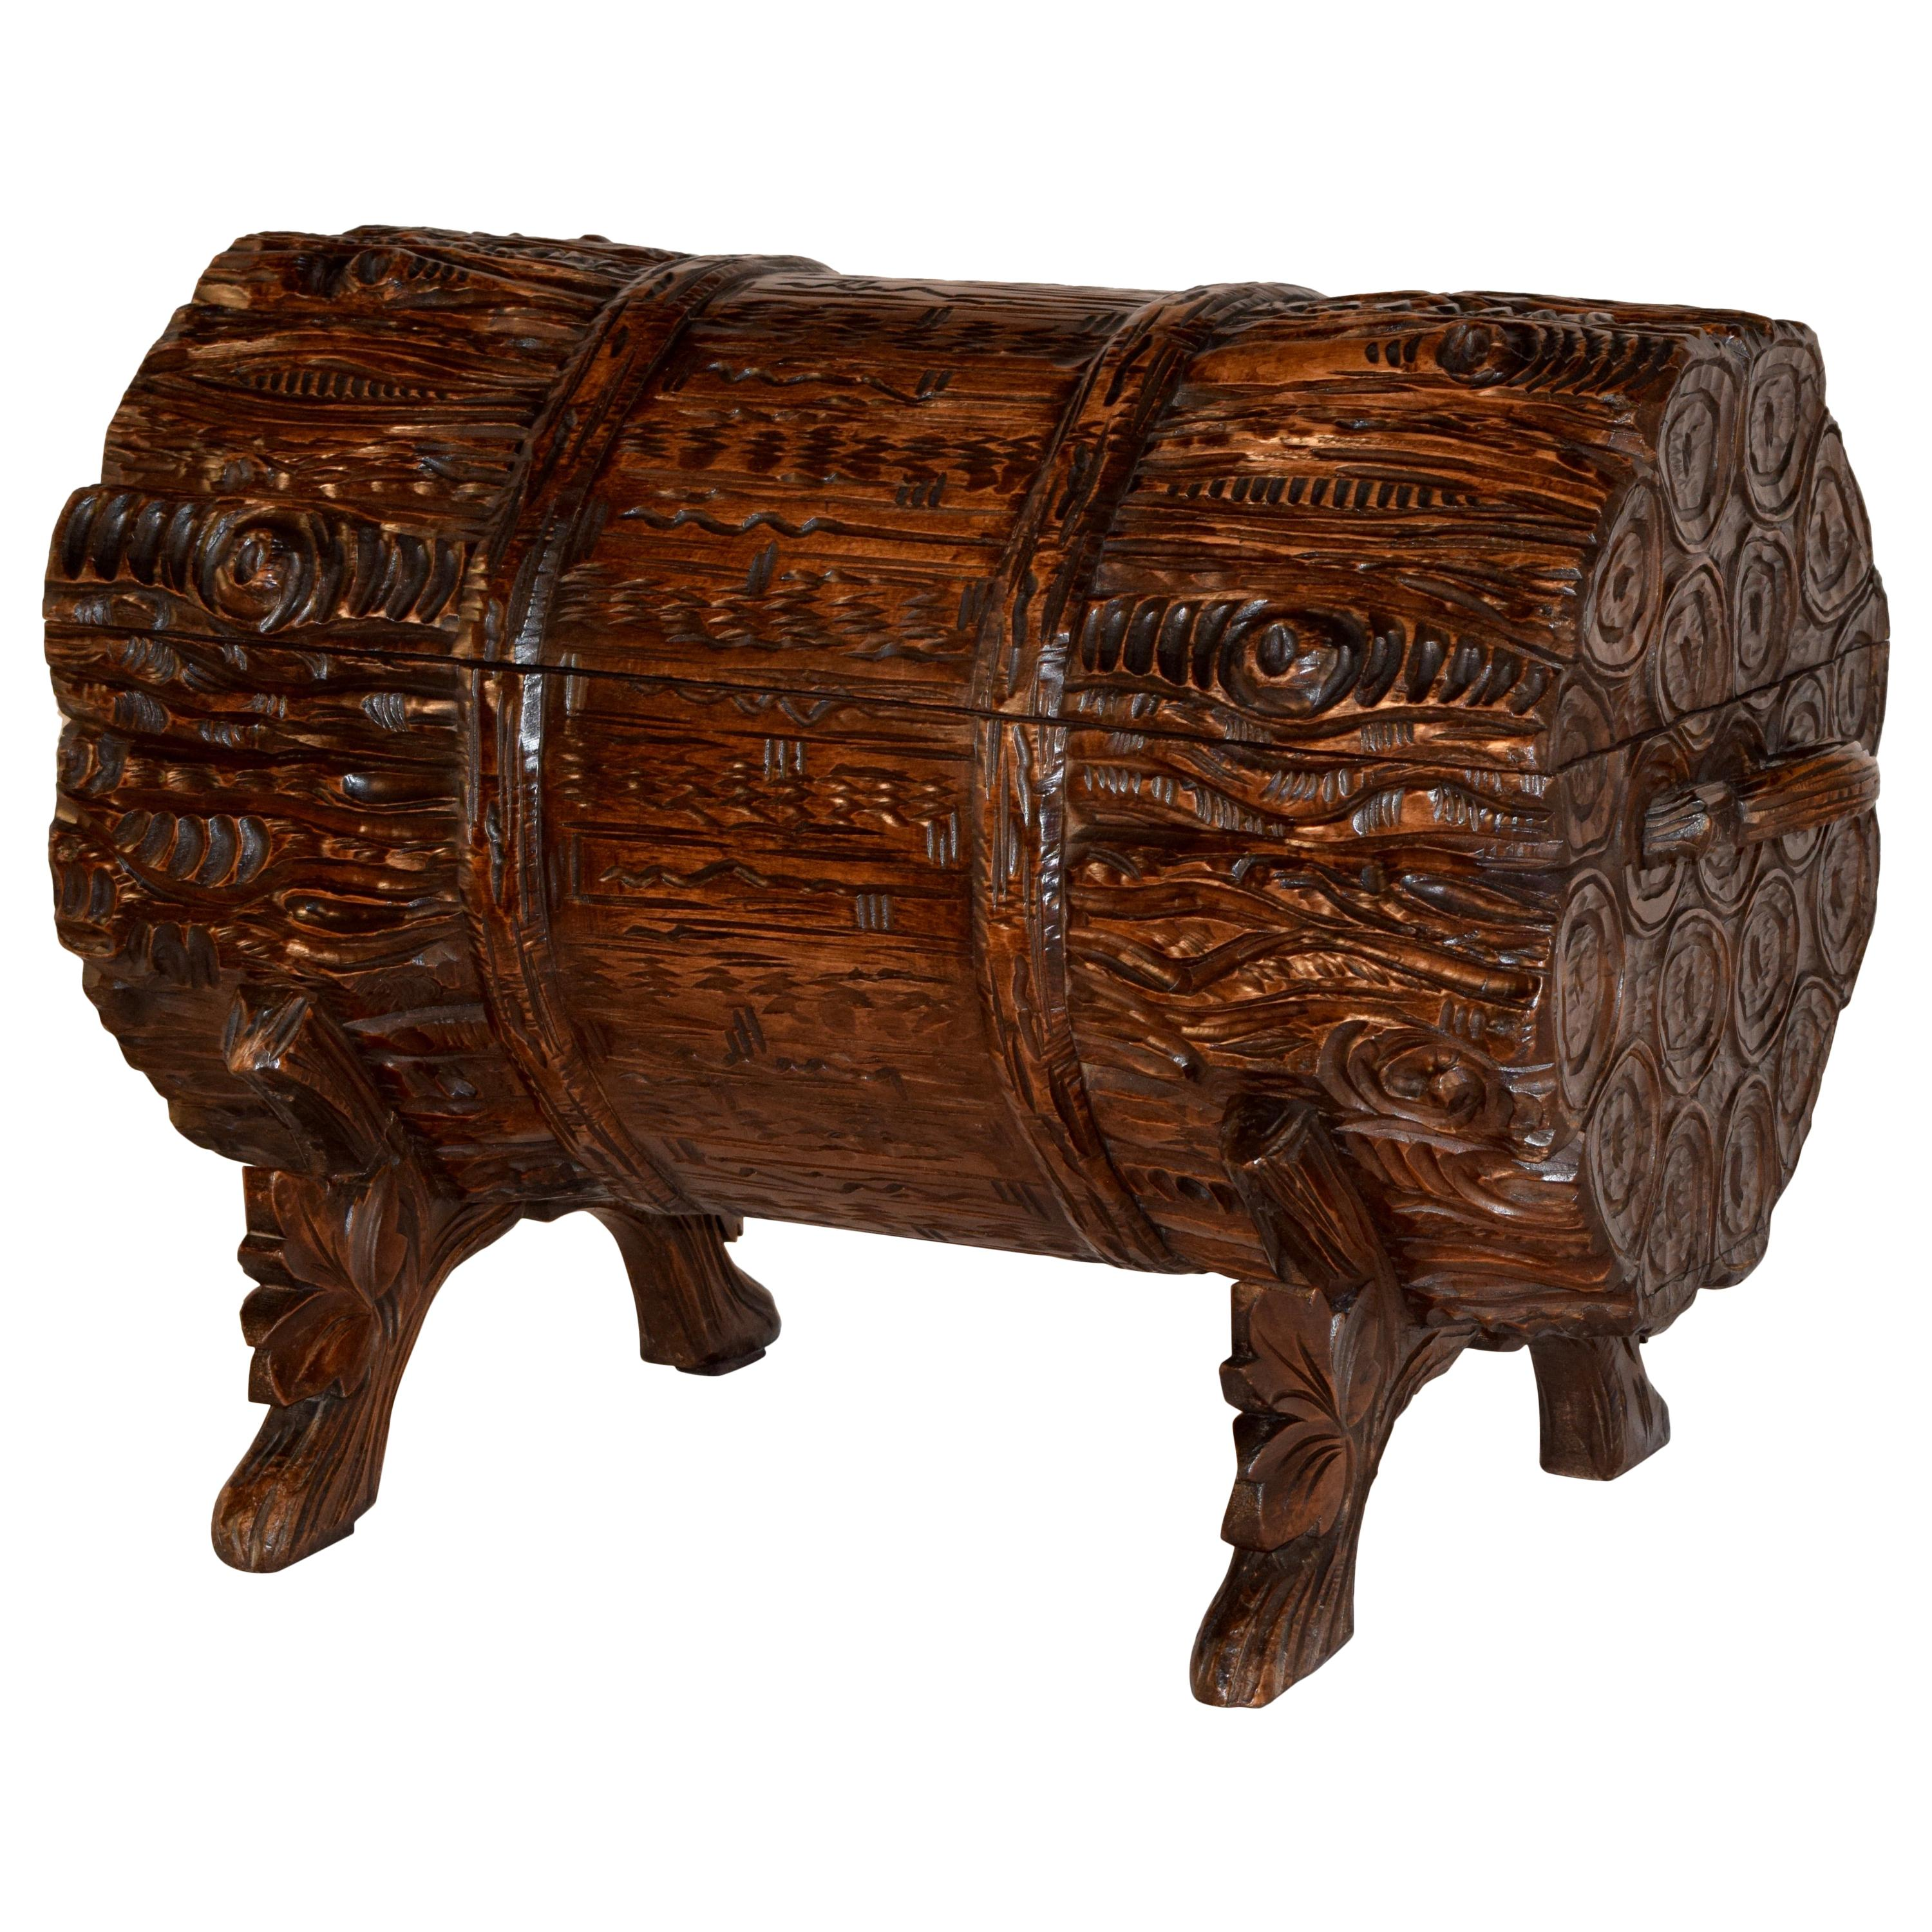 19th Century Black Forest Carved Trunk